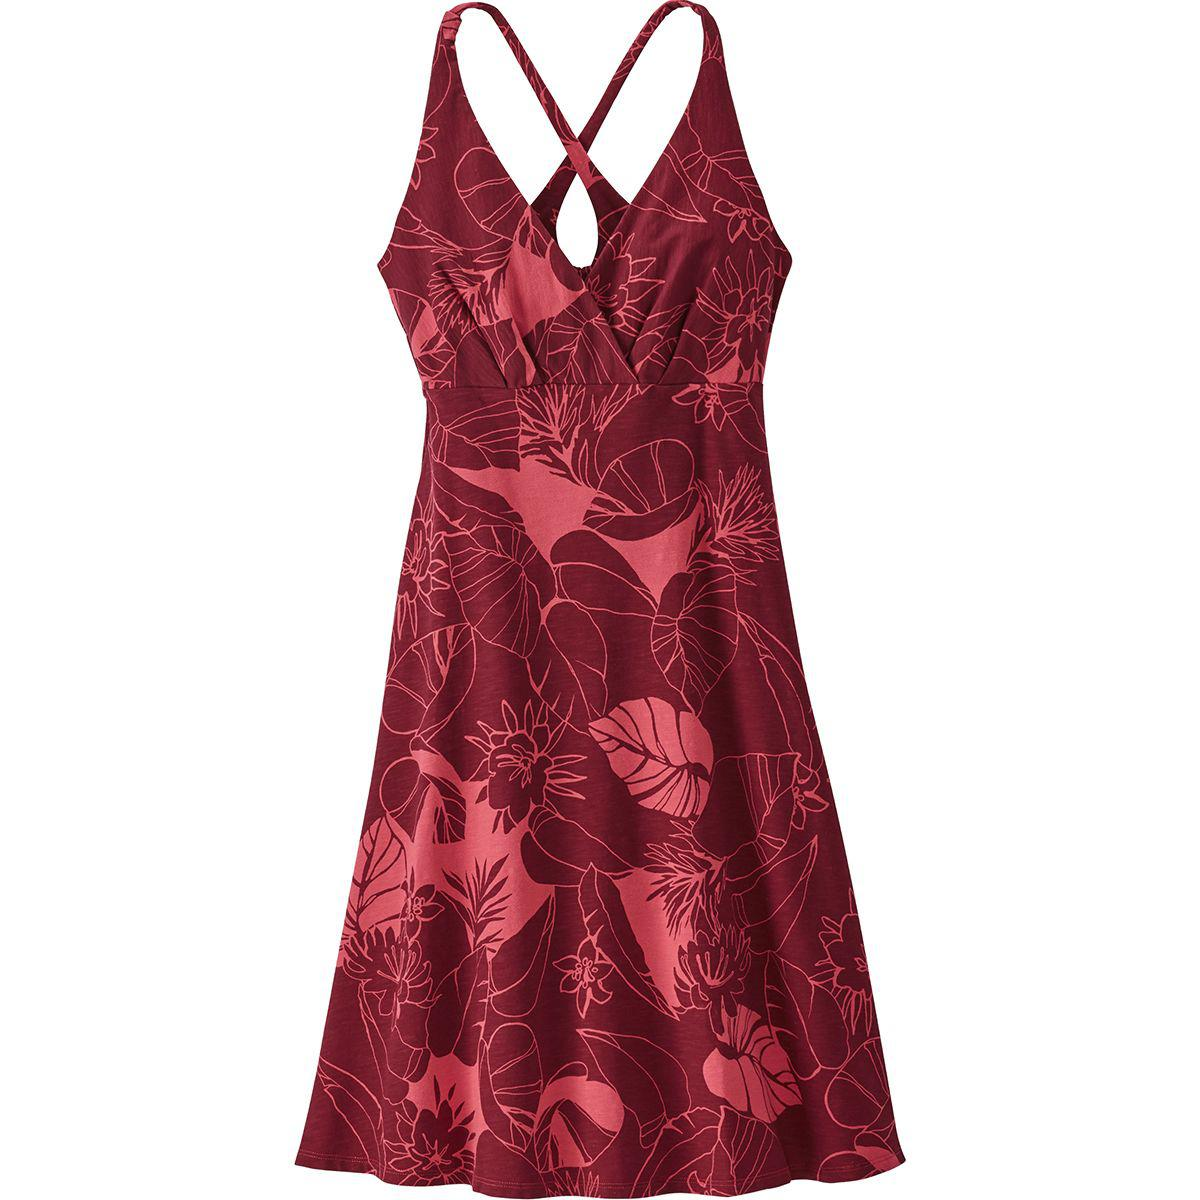 7e6c36ce7ce Lyst - Patagonia Amber Dawn Dress in Red